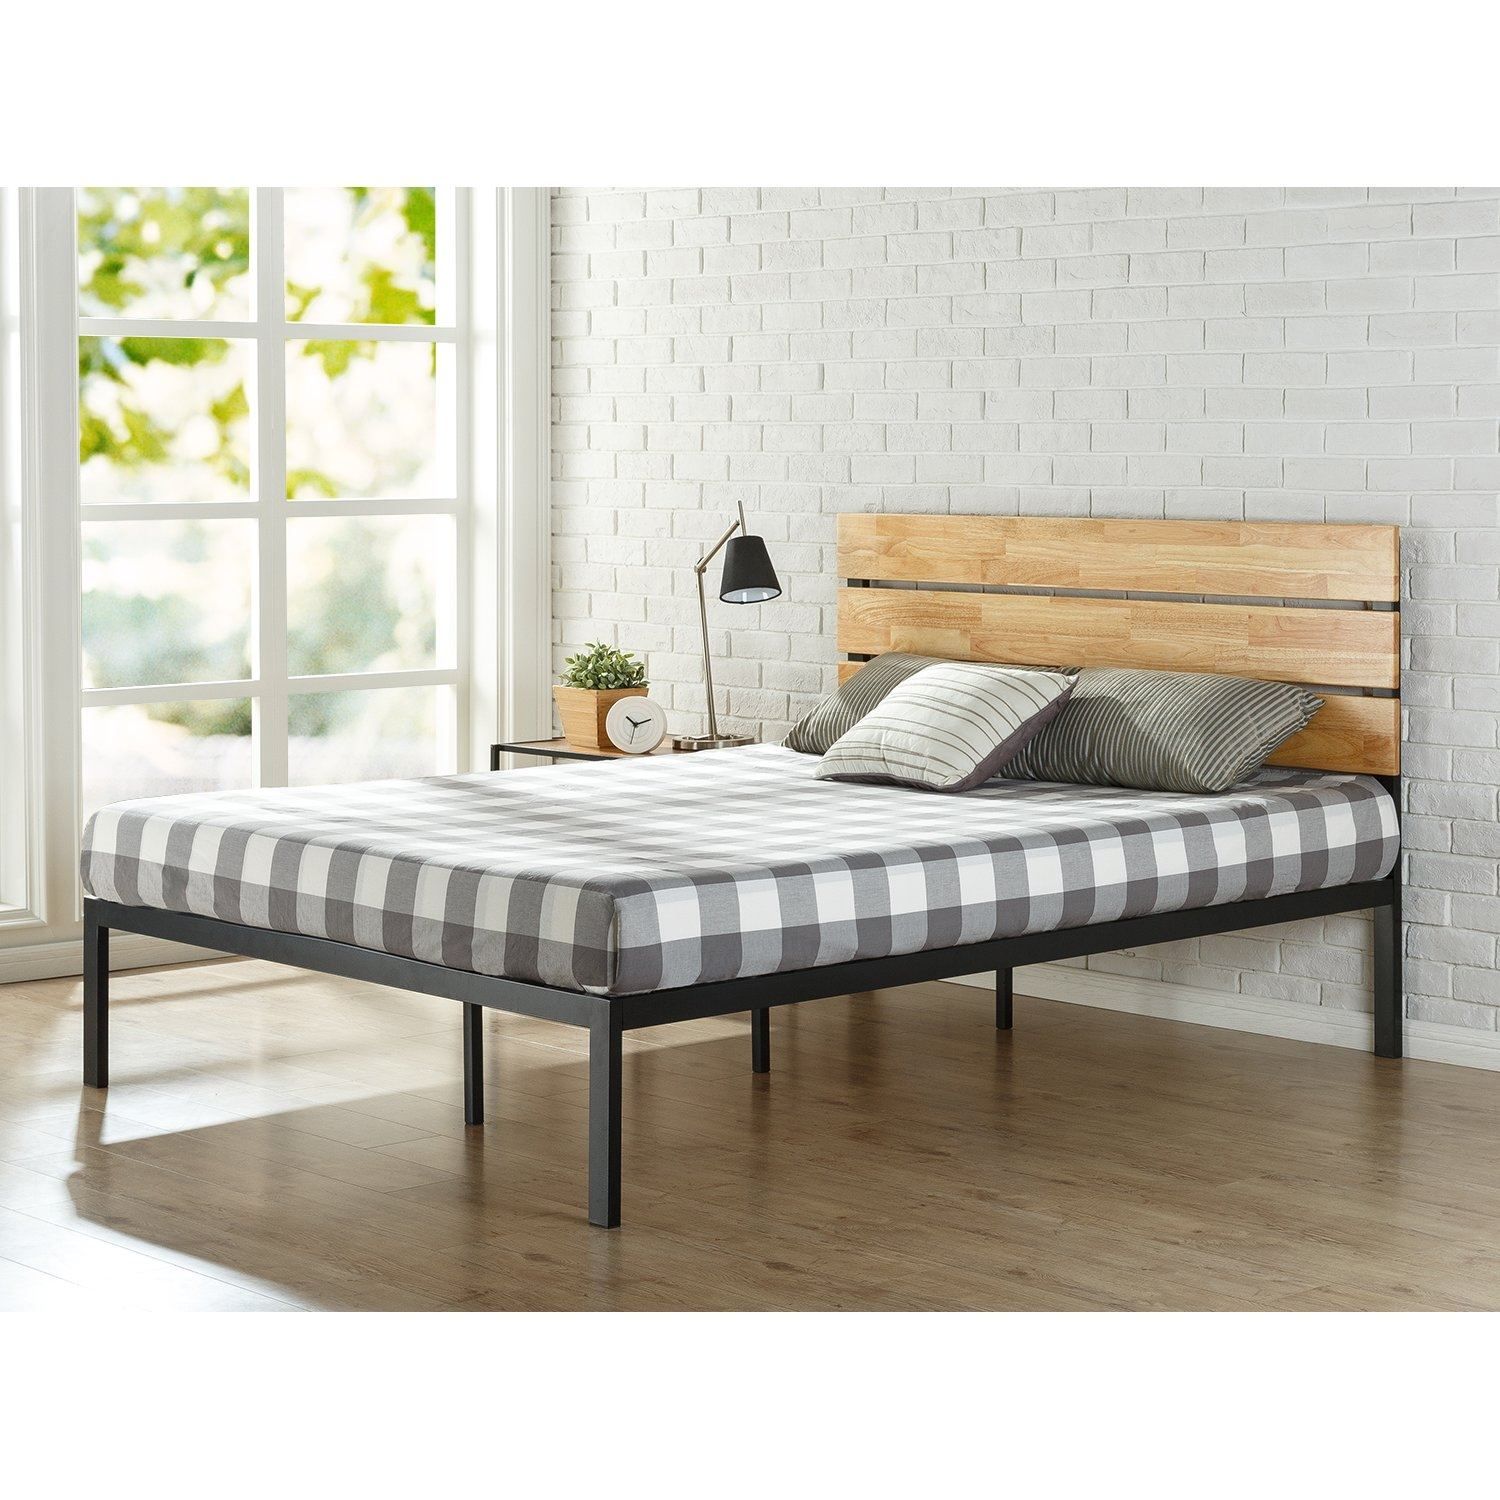 Platform Bed Frame For Latex Mattresszinus sonoma metalwood platform bed reviews wayfair